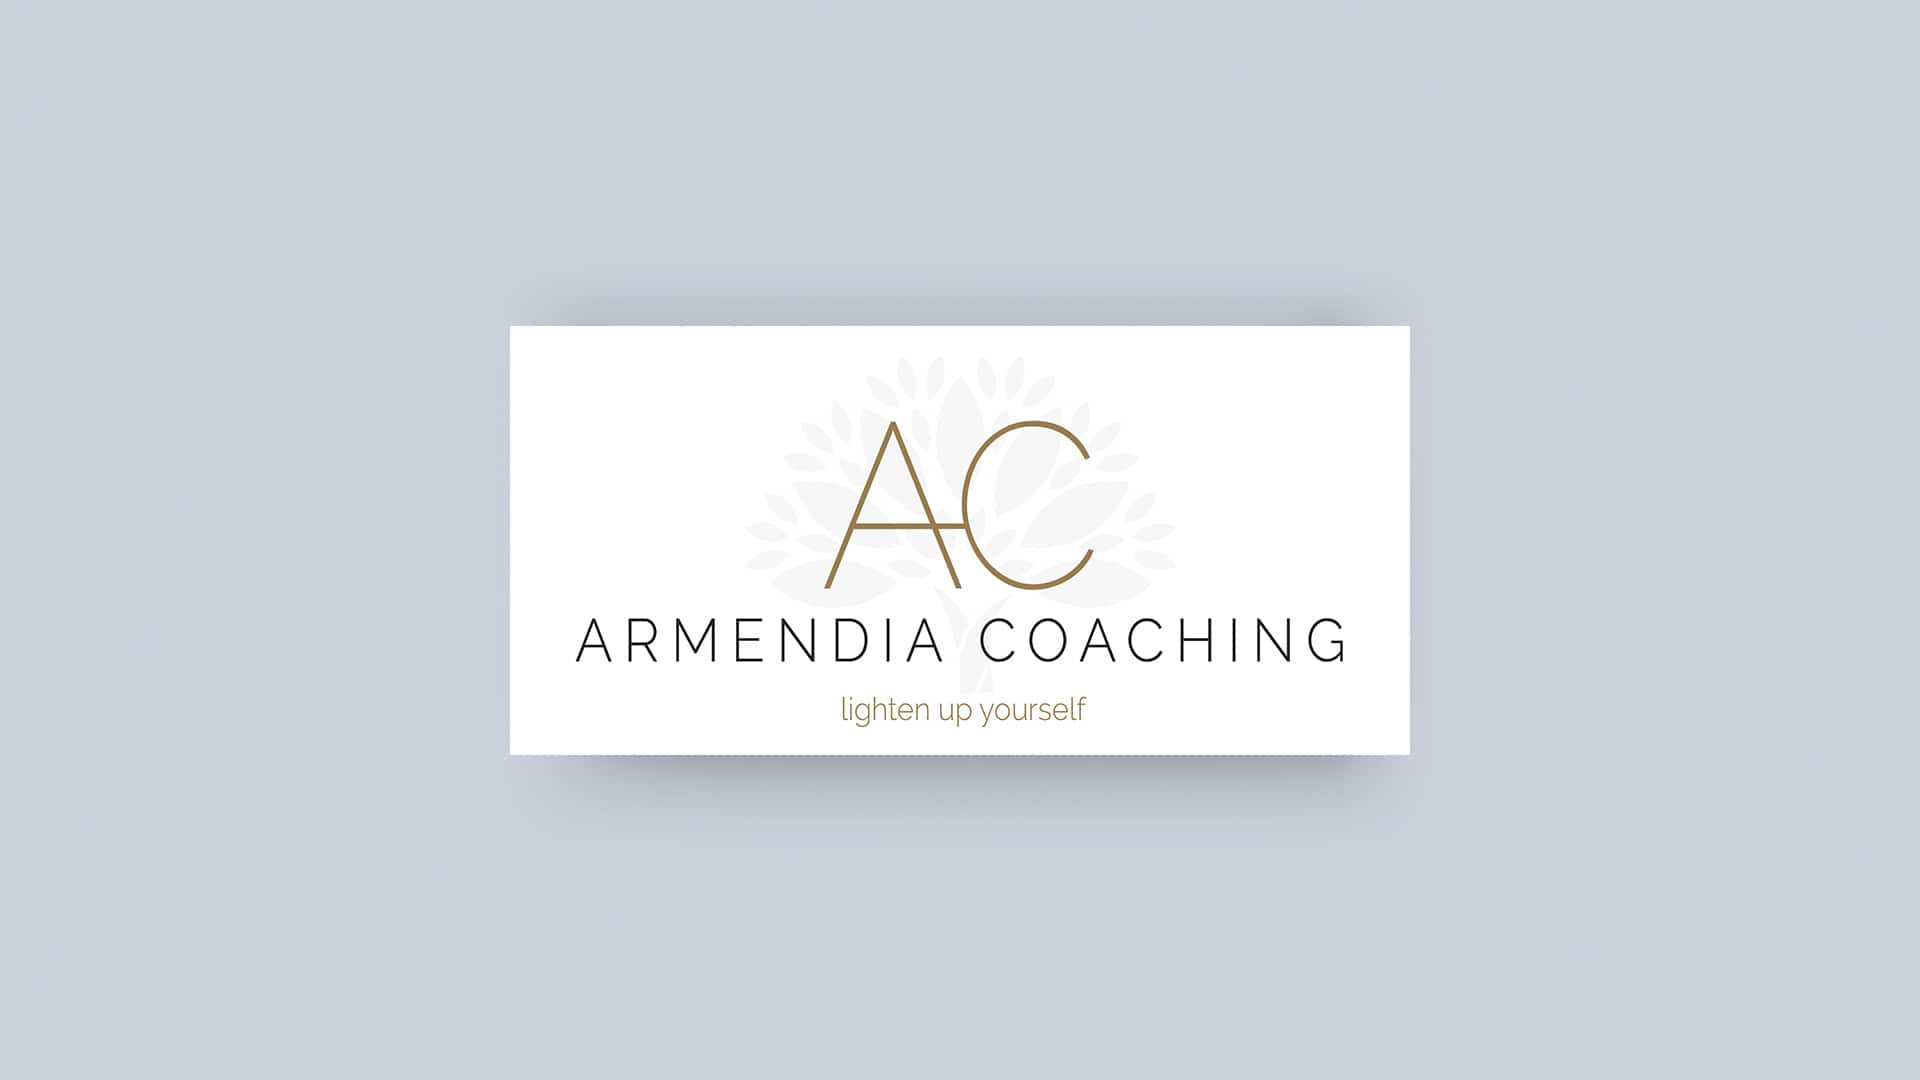 armendia-coaching logo